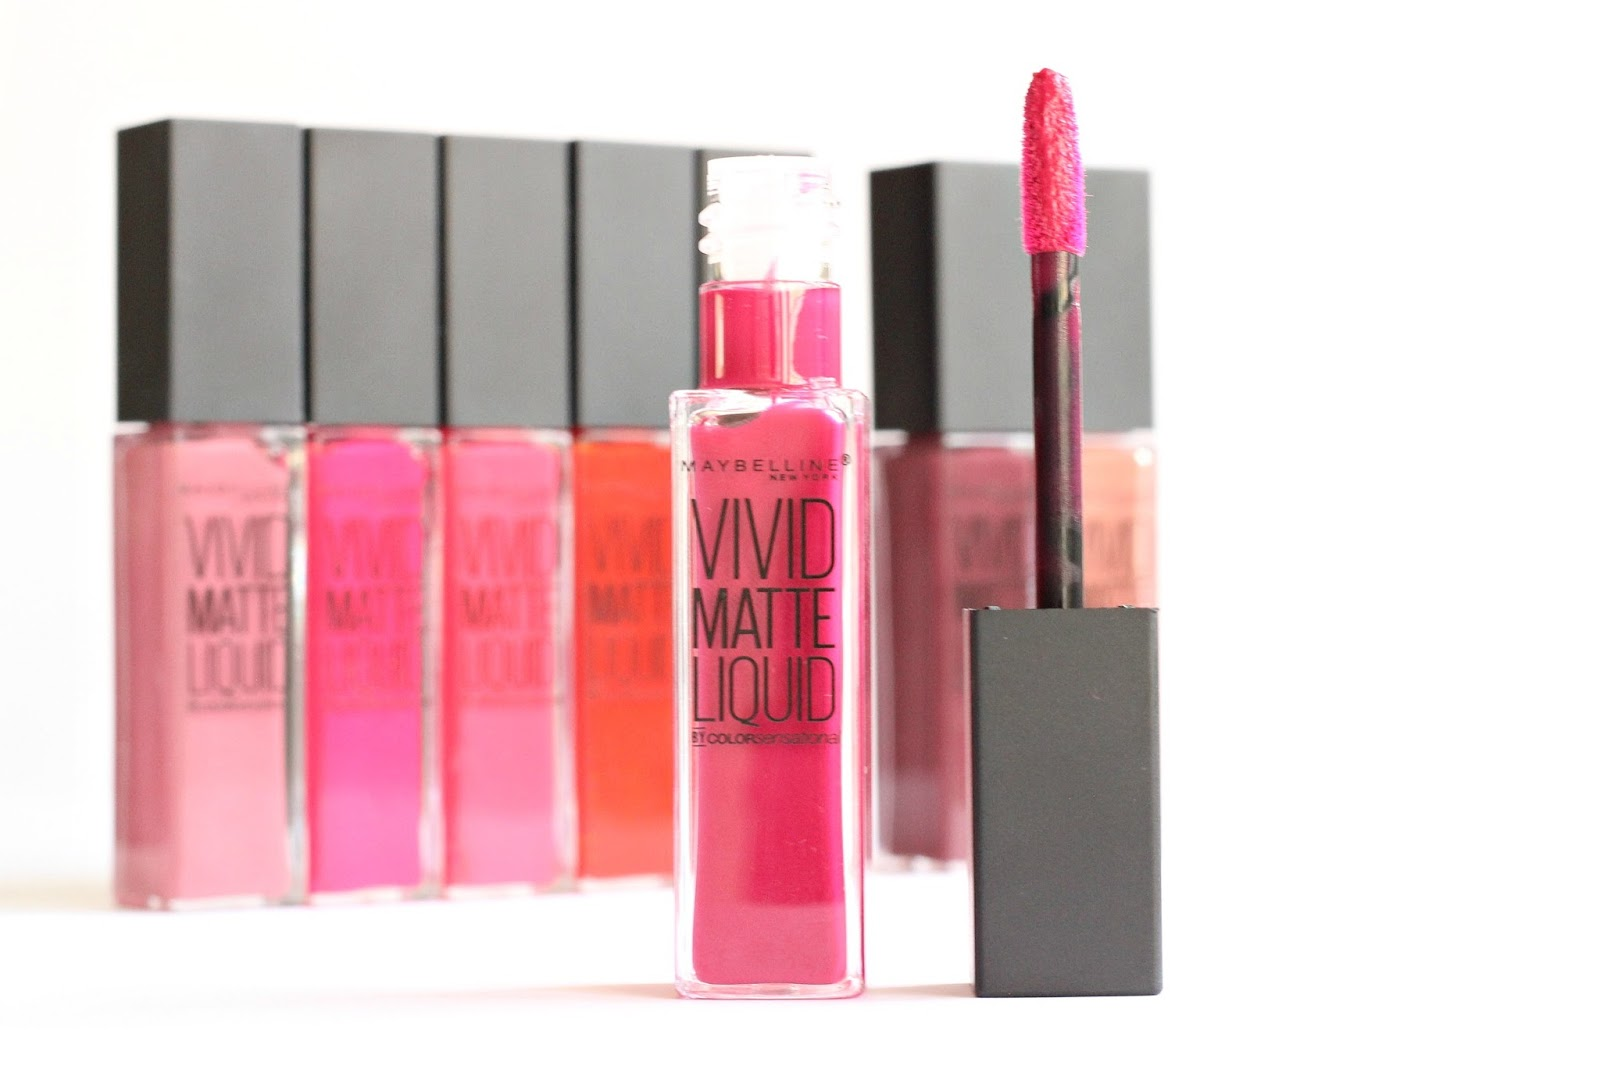 NEW Maybelline Color Sensational Vivid Matte Liquid Lipsticks Collection